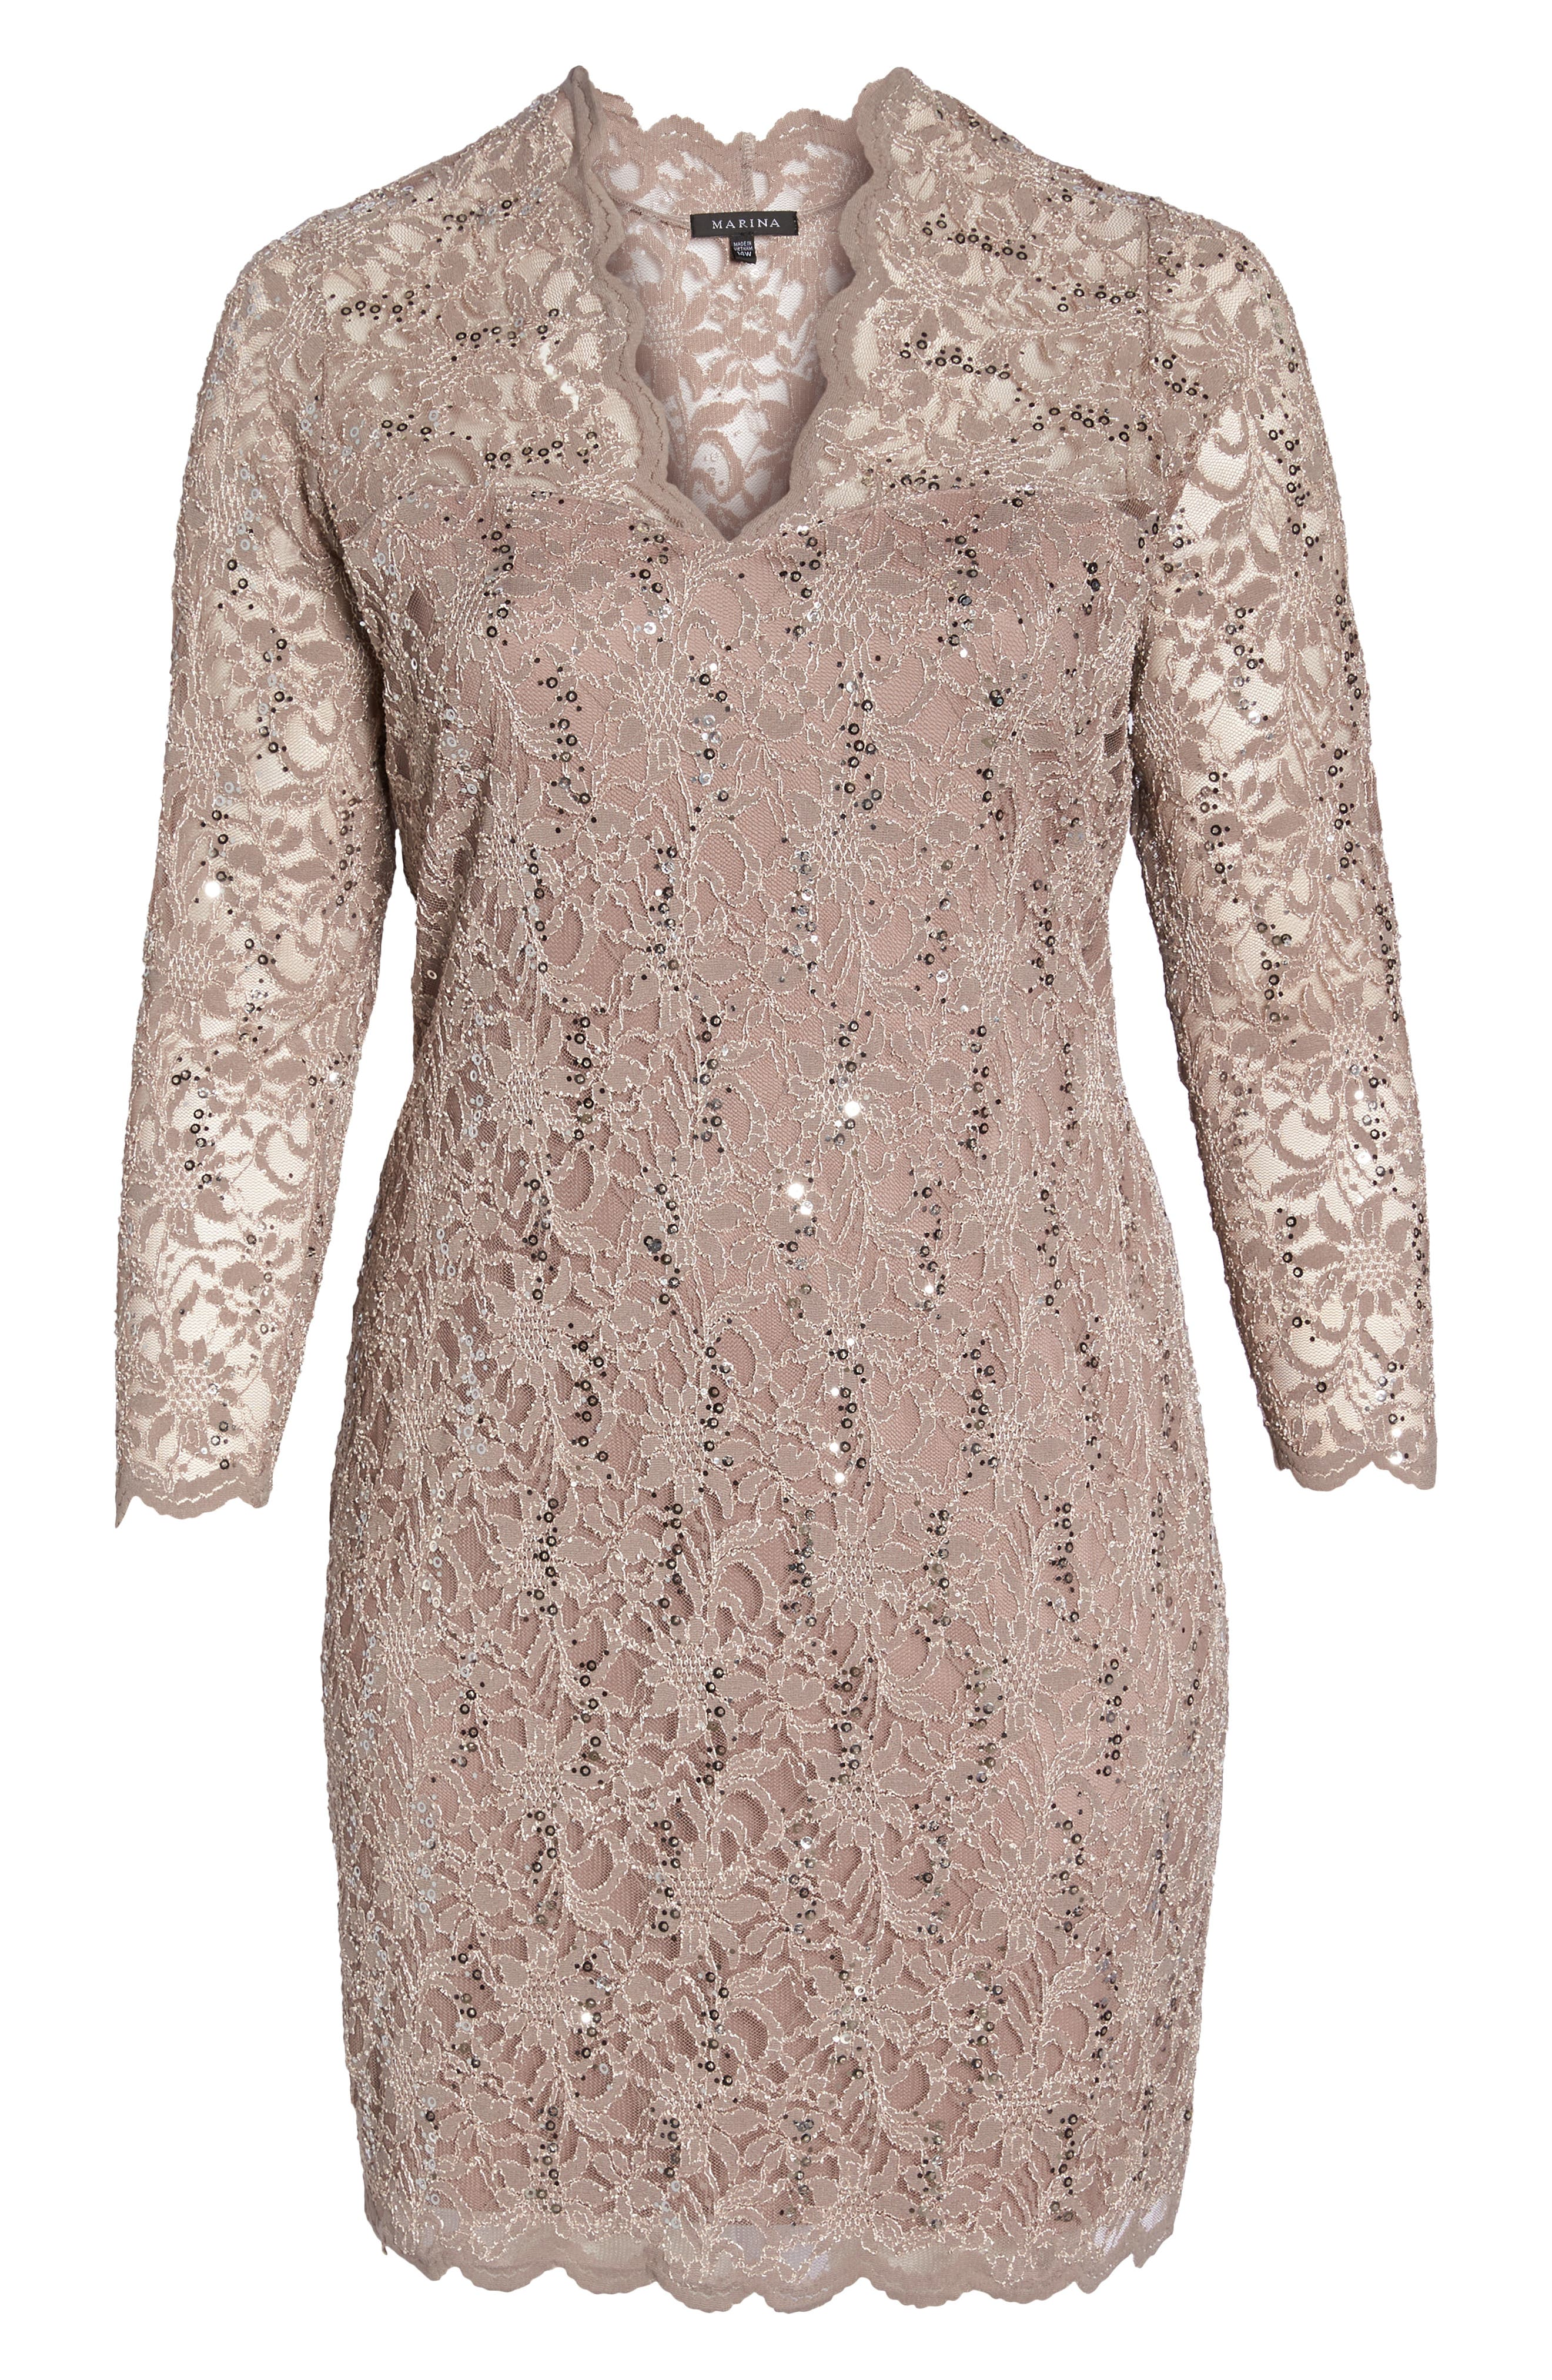 Sequin Stretch Lace Sheath Dress,                             Alternate thumbnail 6, color,                             TAUPE